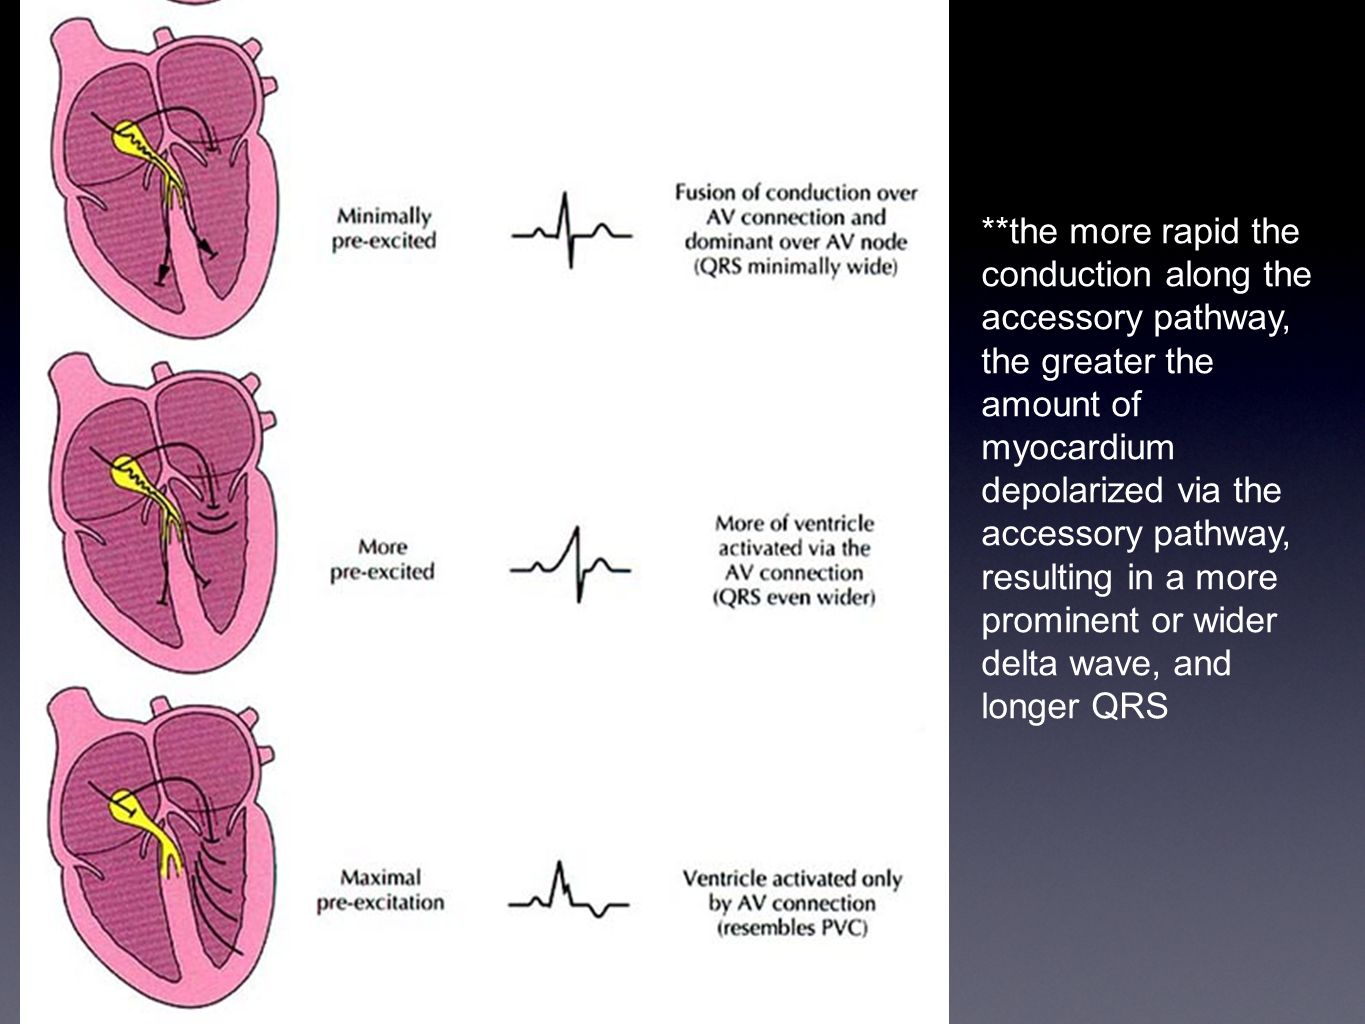 **the more rapid the conduction along the accessory pathway, the greater the amount of myocardium depolarized via the accessory pathway, resulting in a more prominent or wider delta wave, and longer QRS